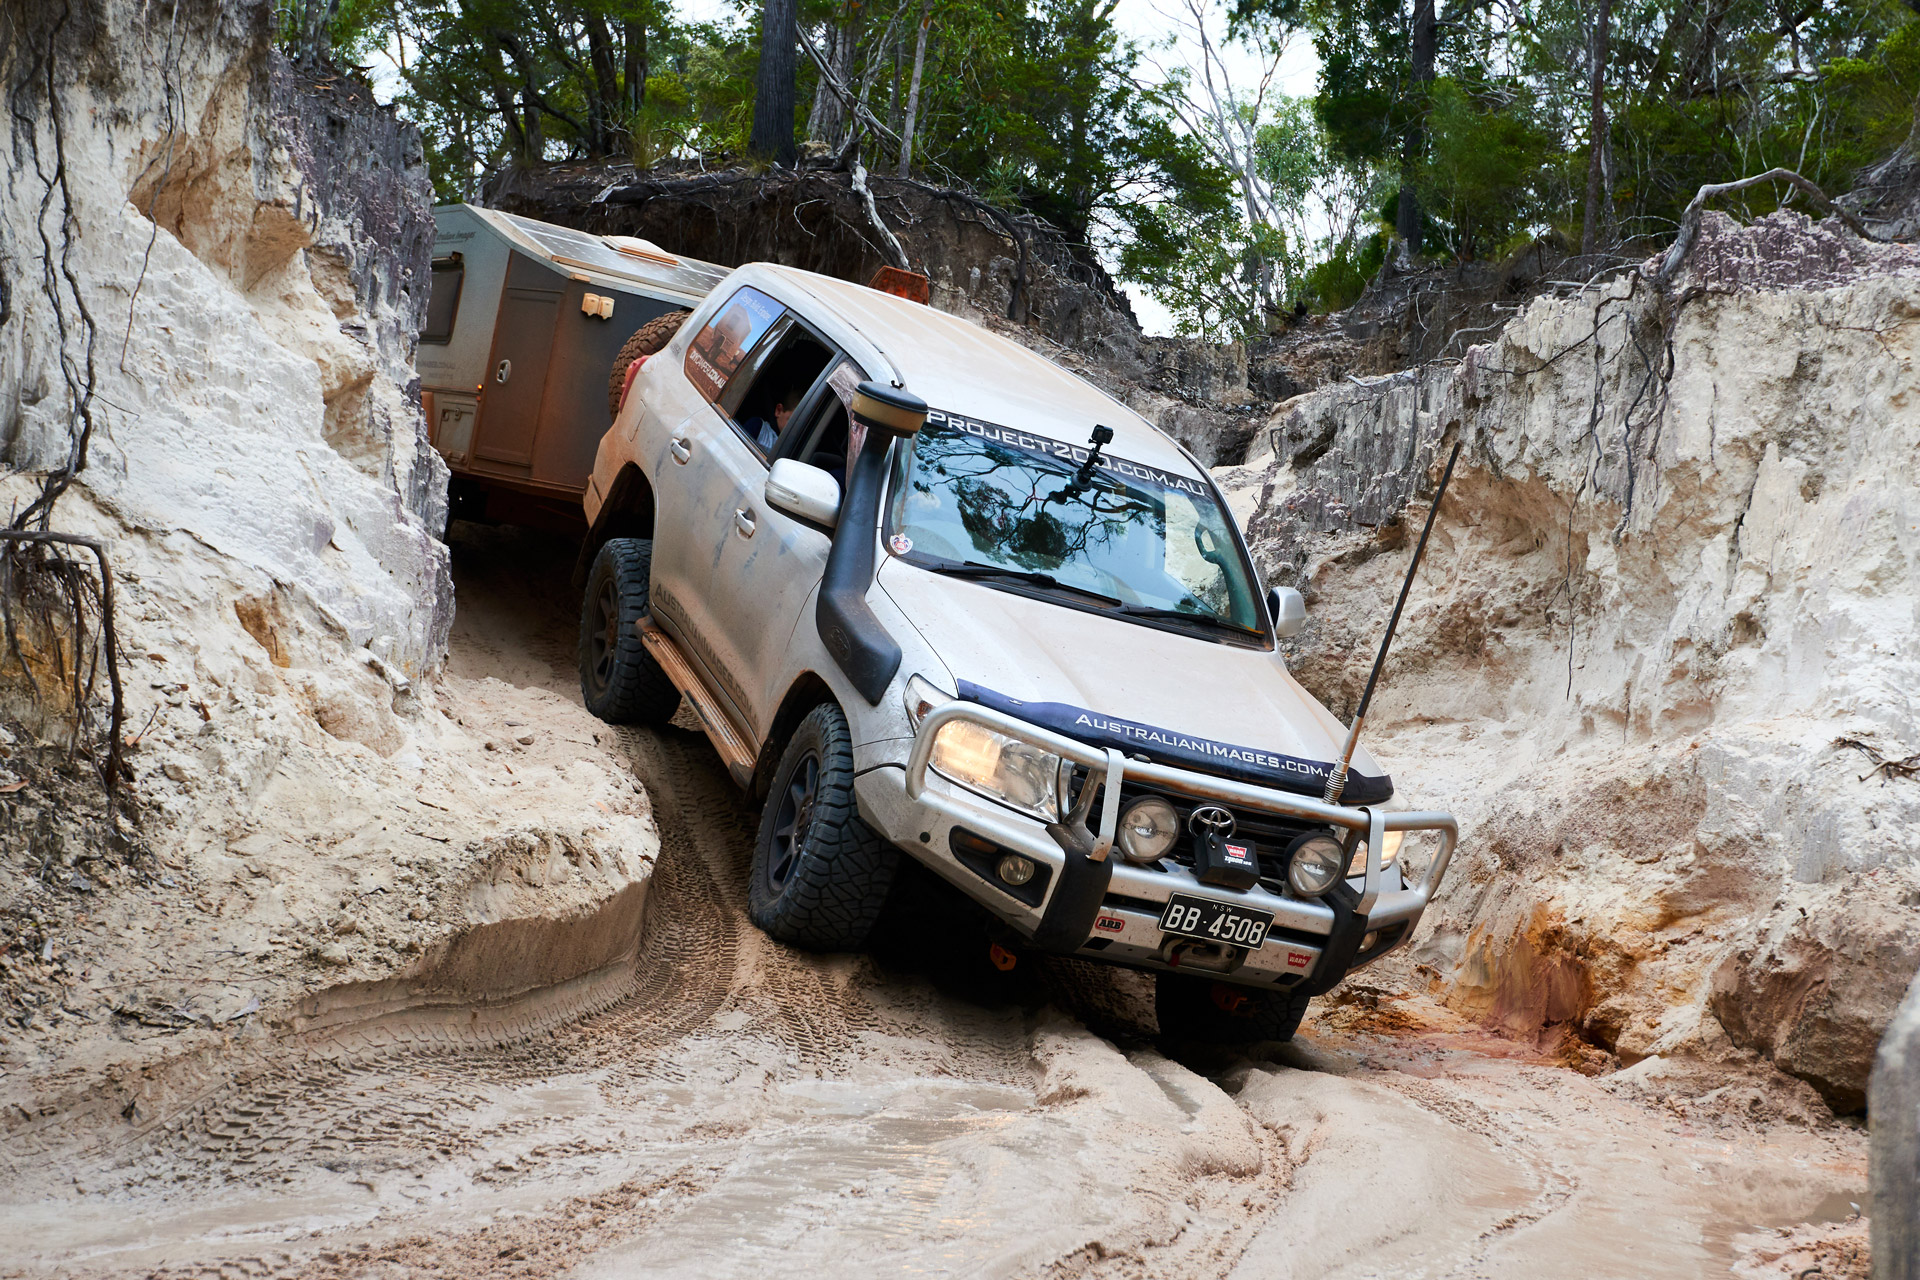 ROH 4x4 Trophy wheels on LC200 Cape York driving from rocks through sandy beach entry